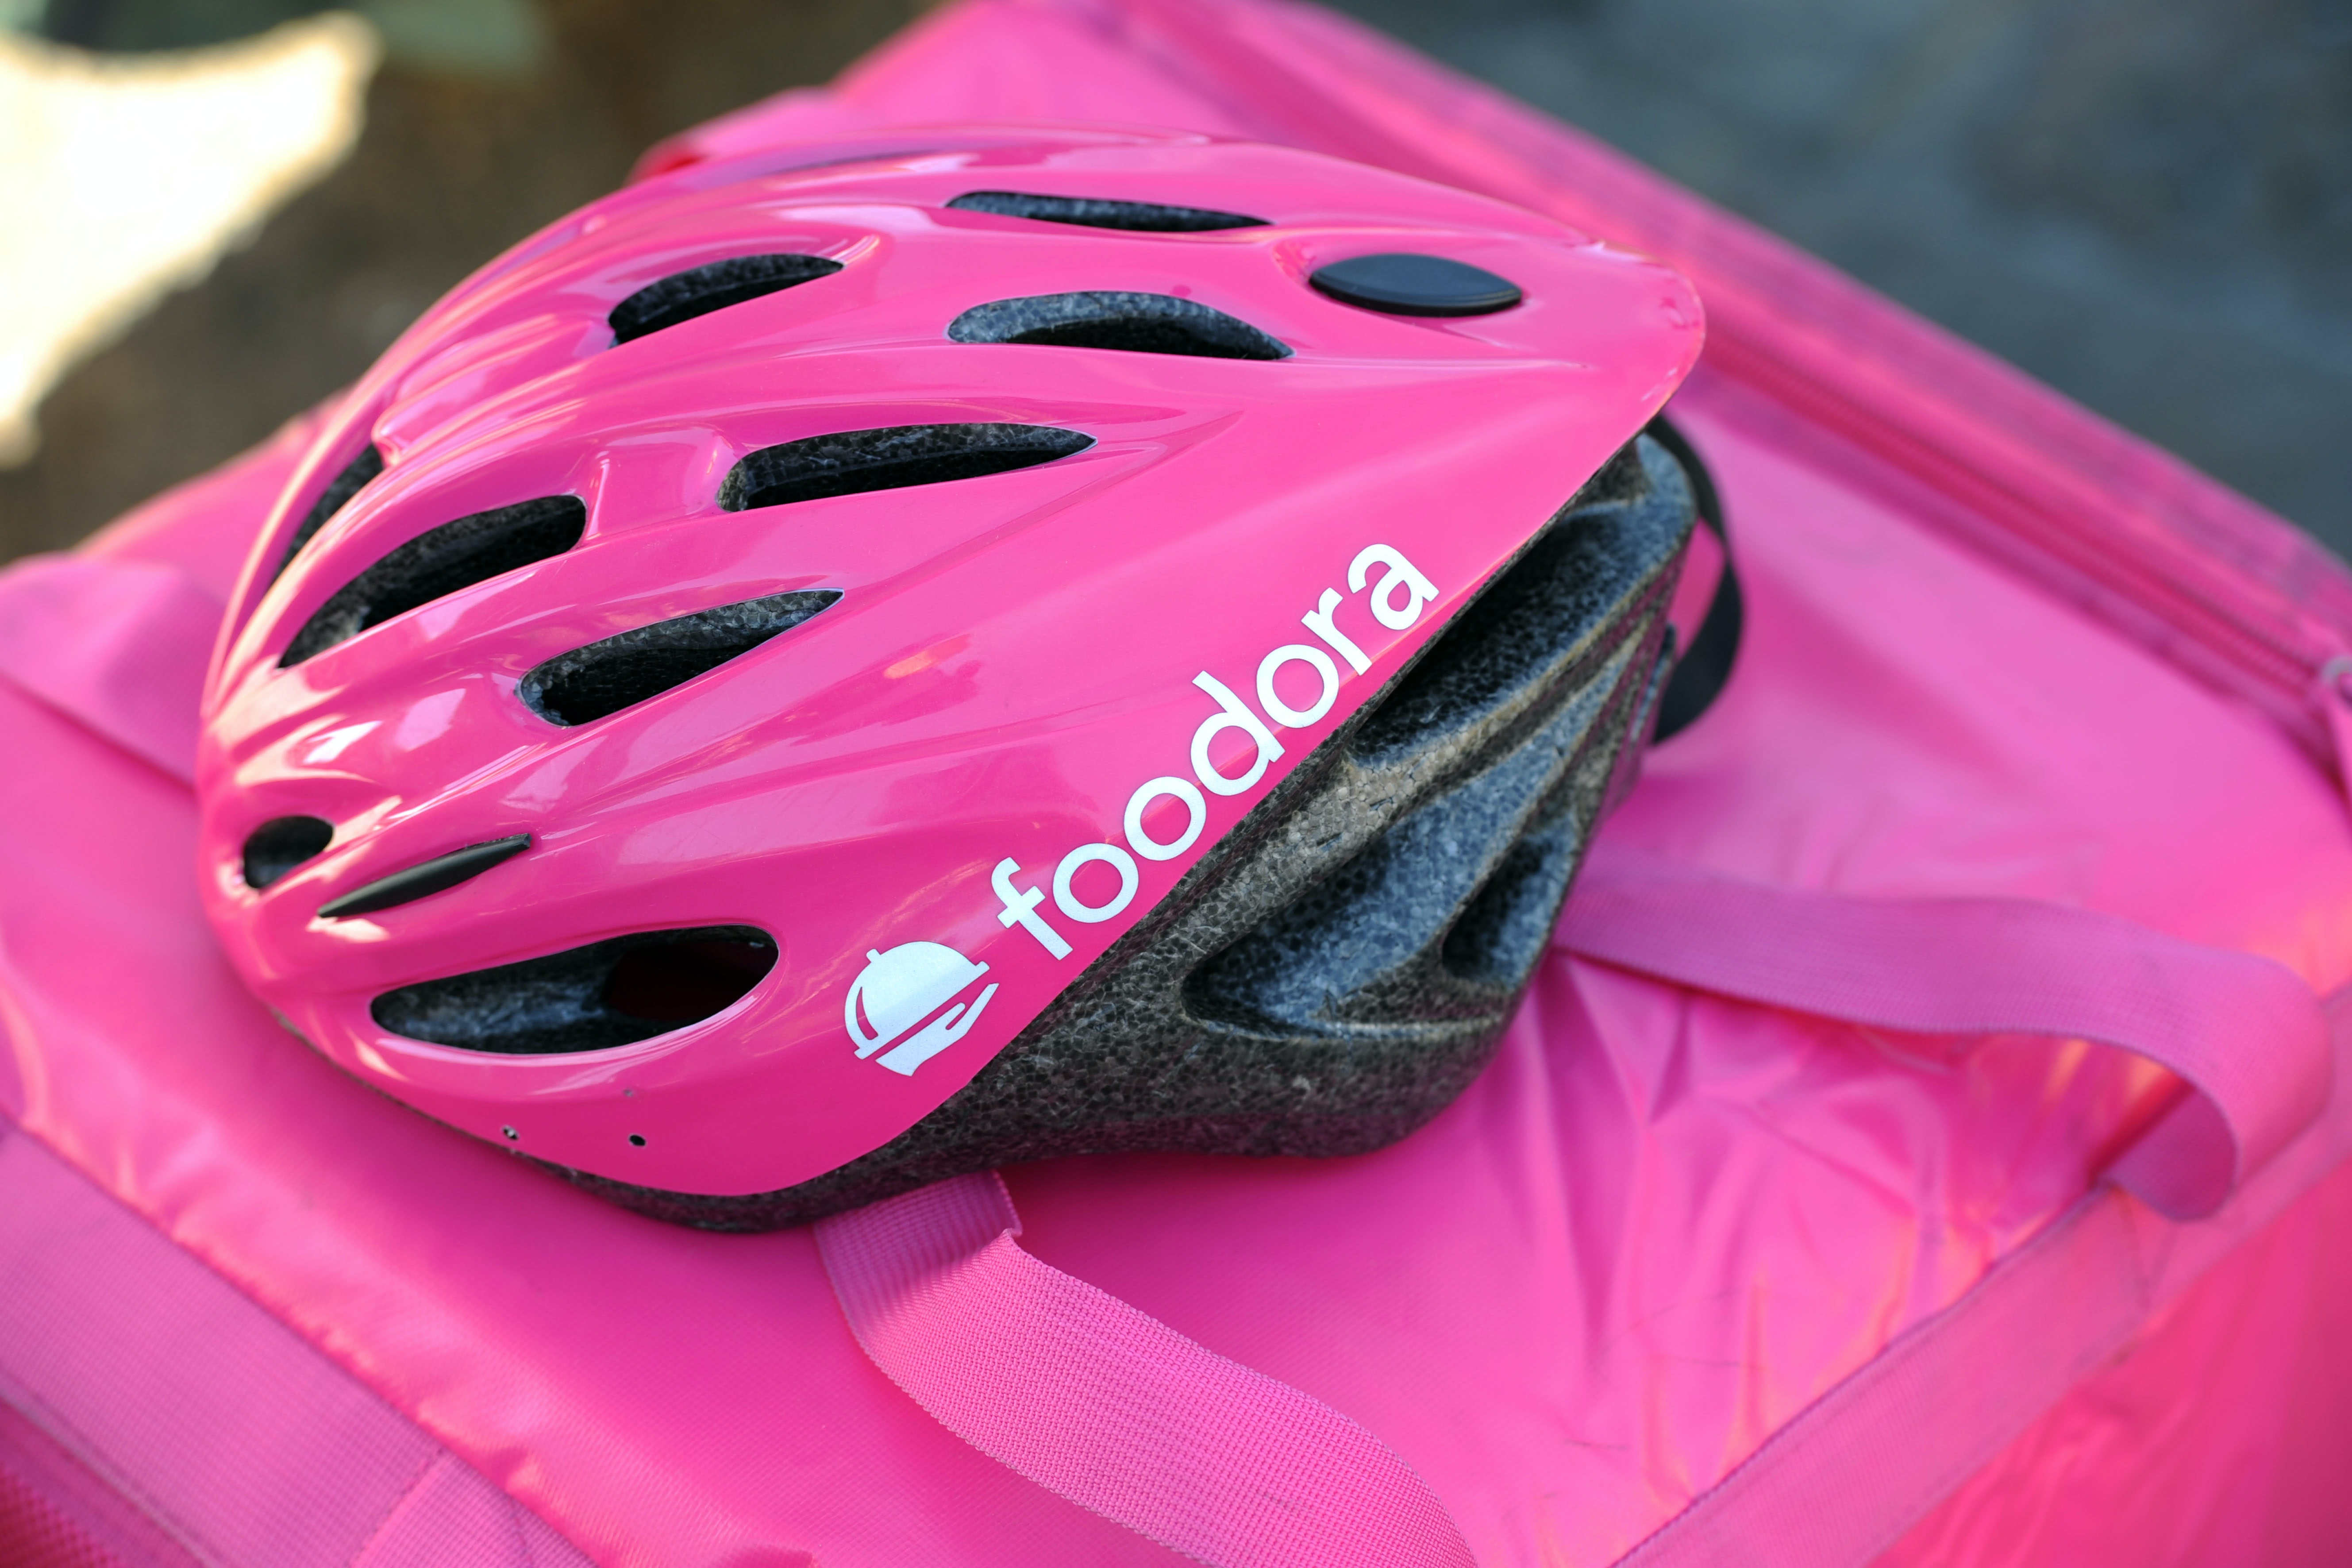 Redefining workers in the platform economy: lessons from the Foodora bunfight